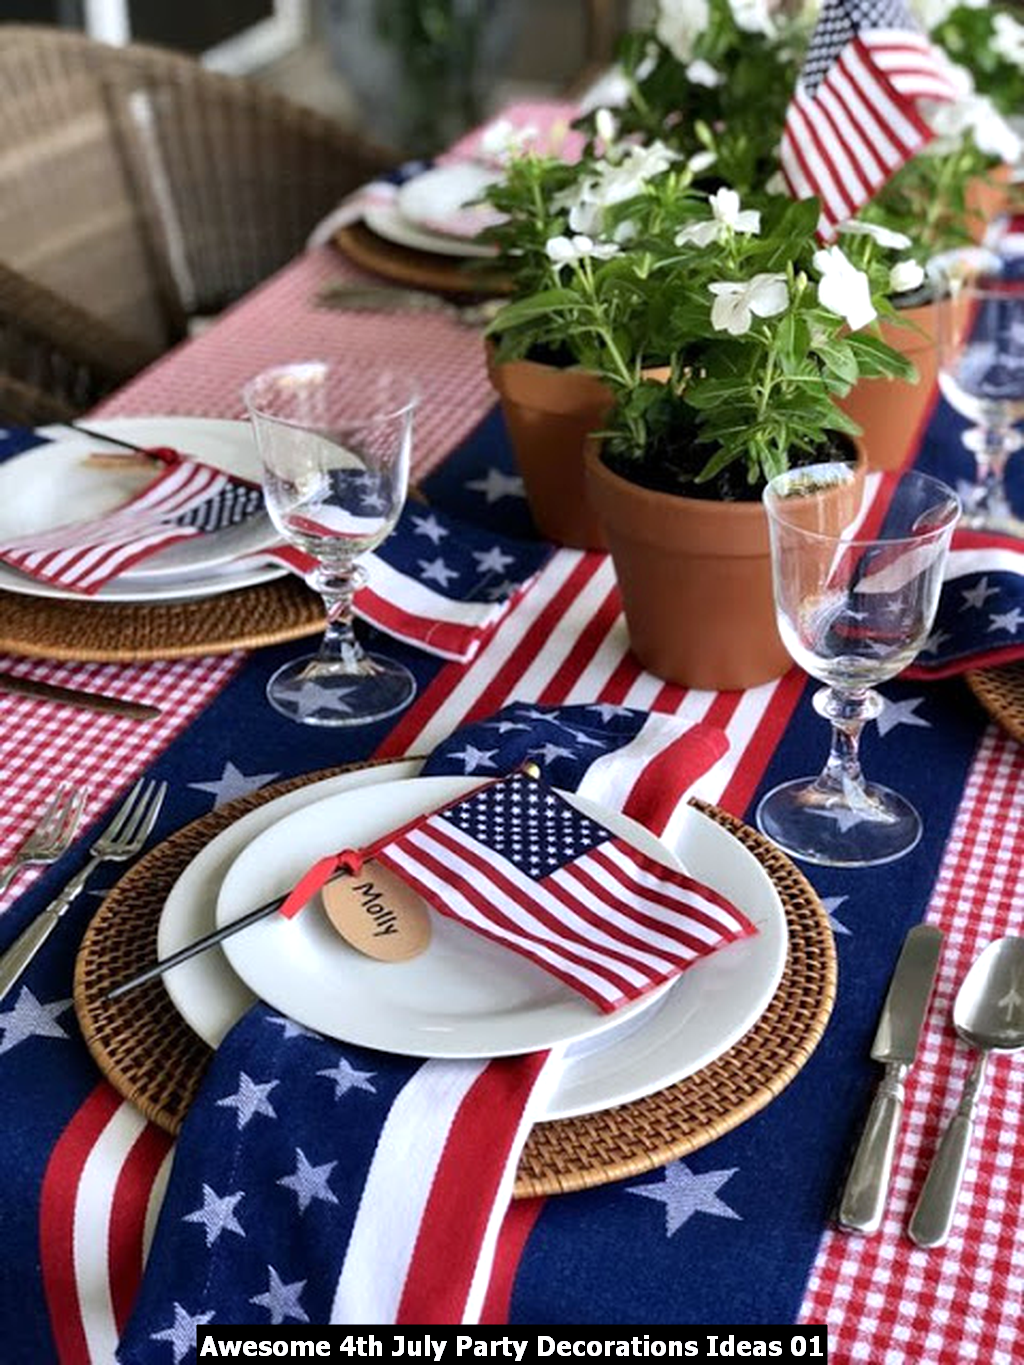 Awesome 4th July Party Decorations Ideas 01